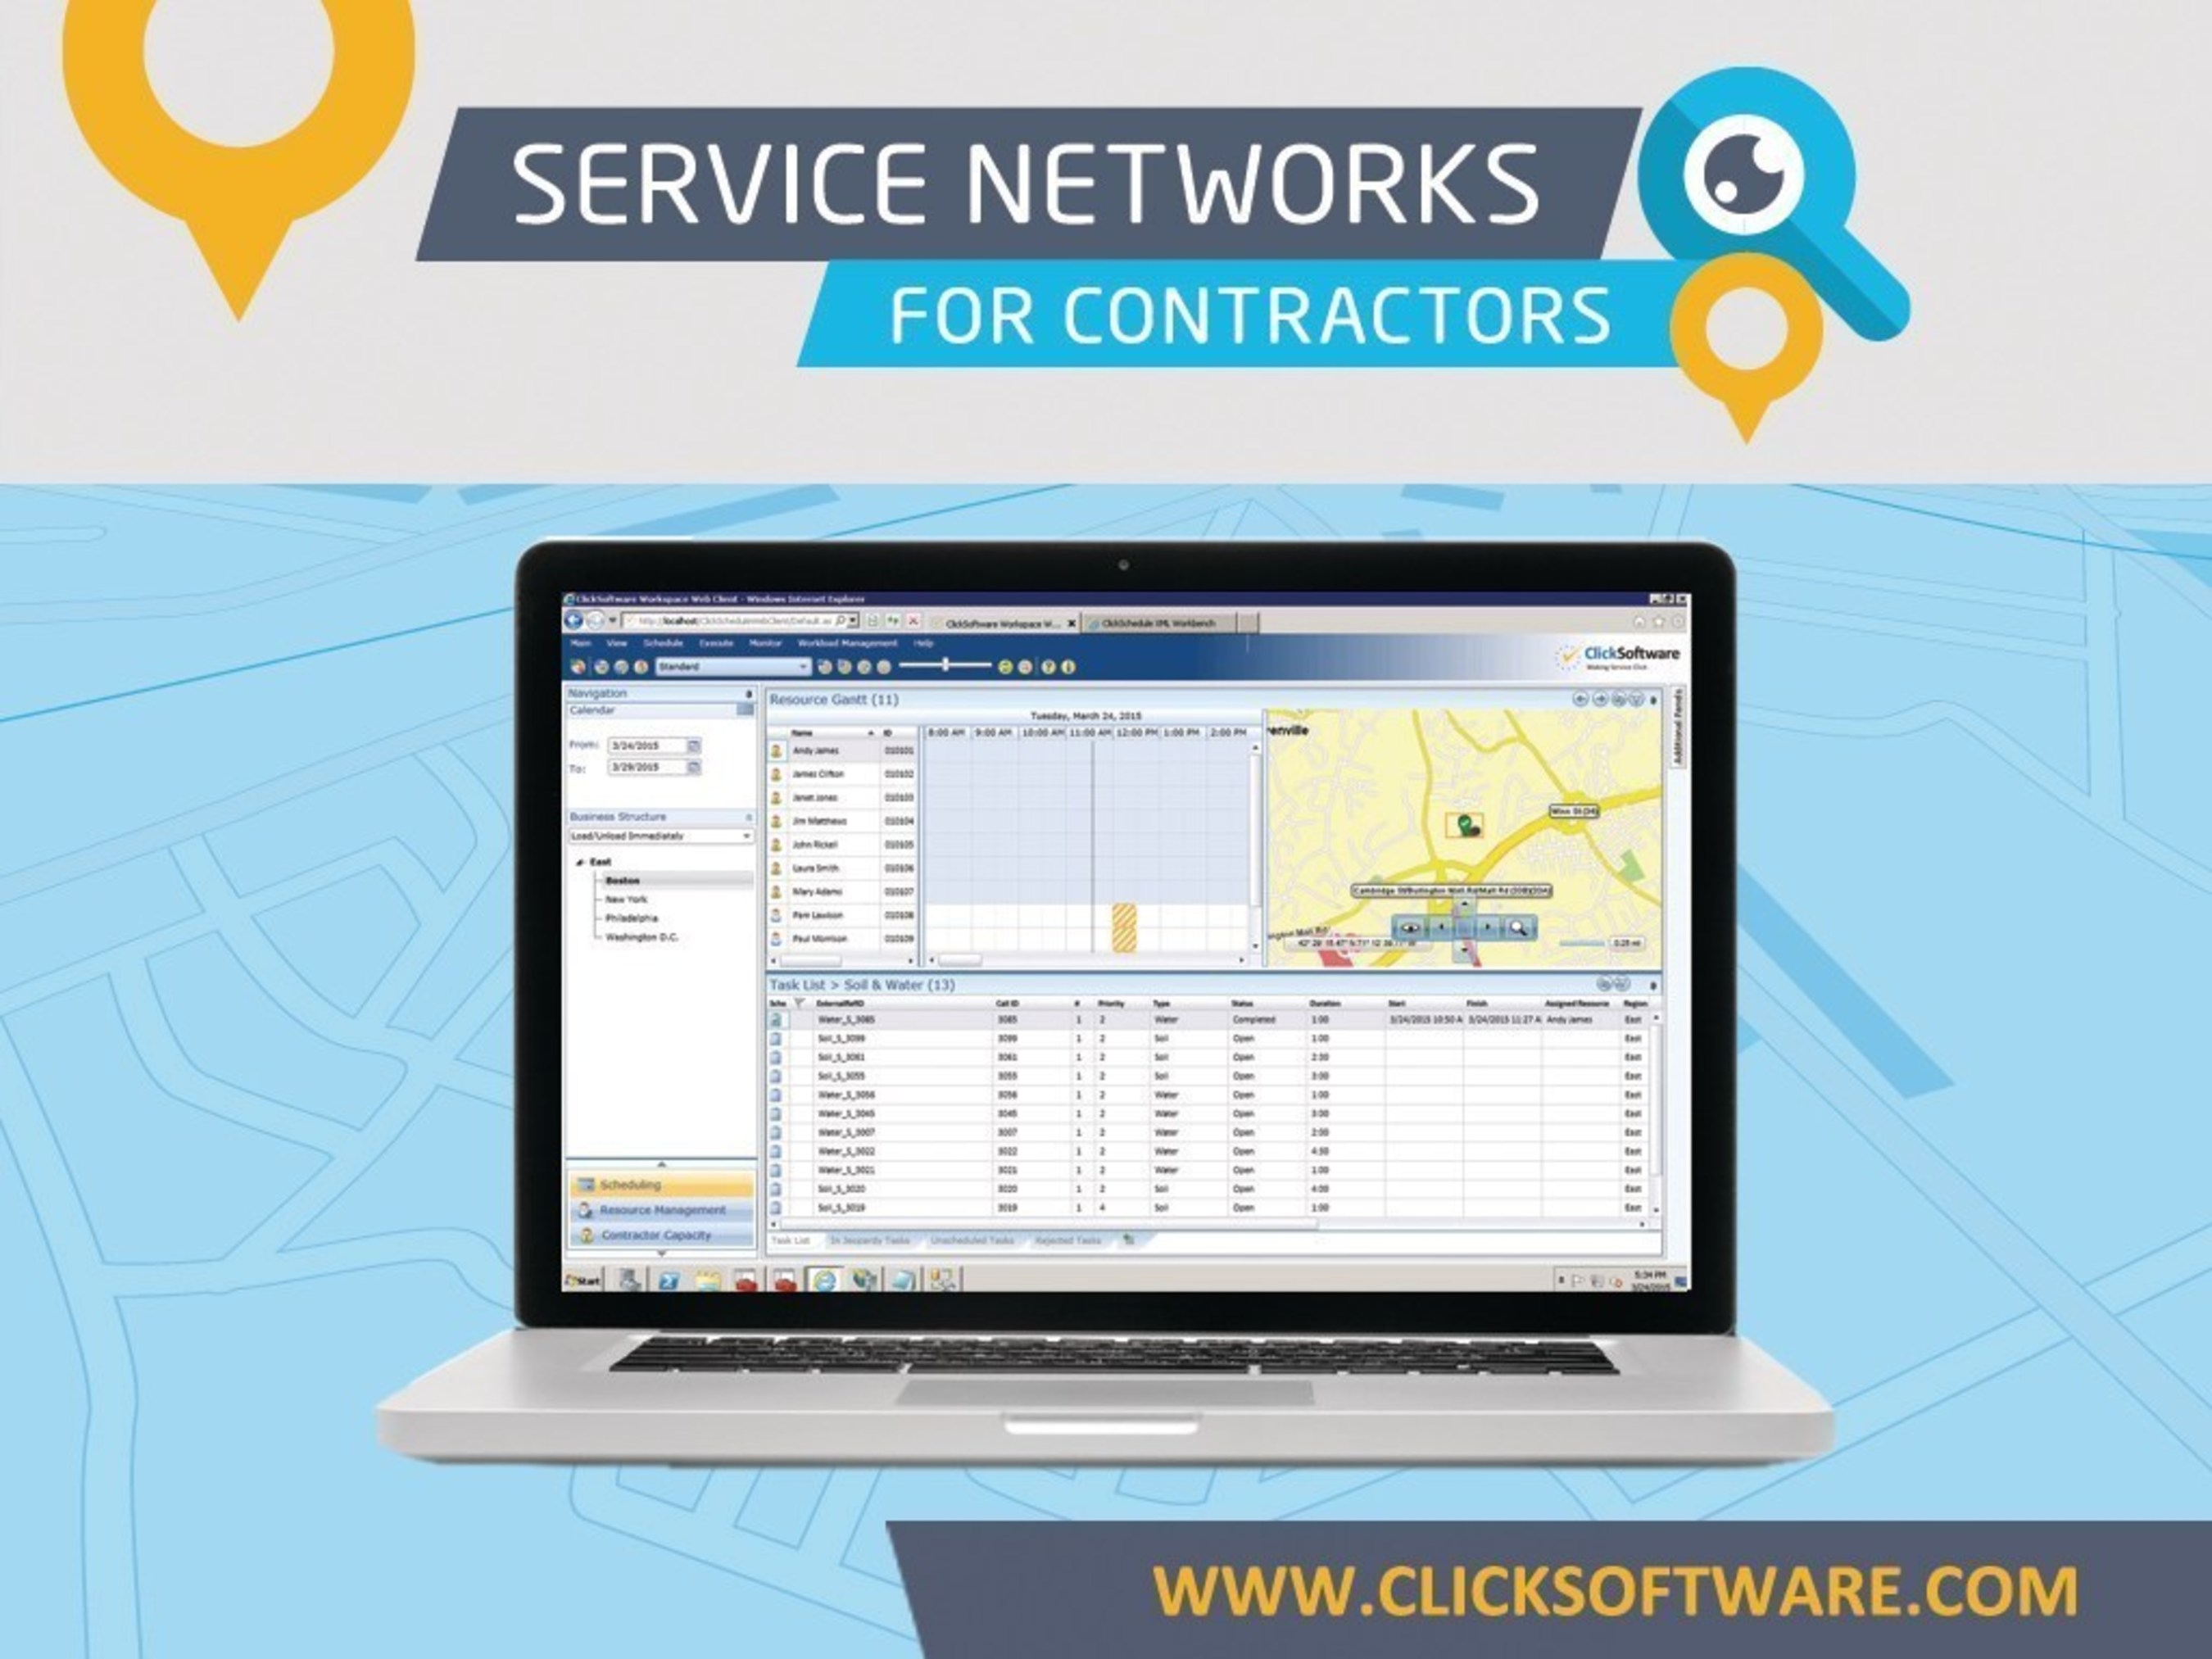 ClickSoftware's Service Networks for Contractors transforms the service experience for customers, enterprises and contractors